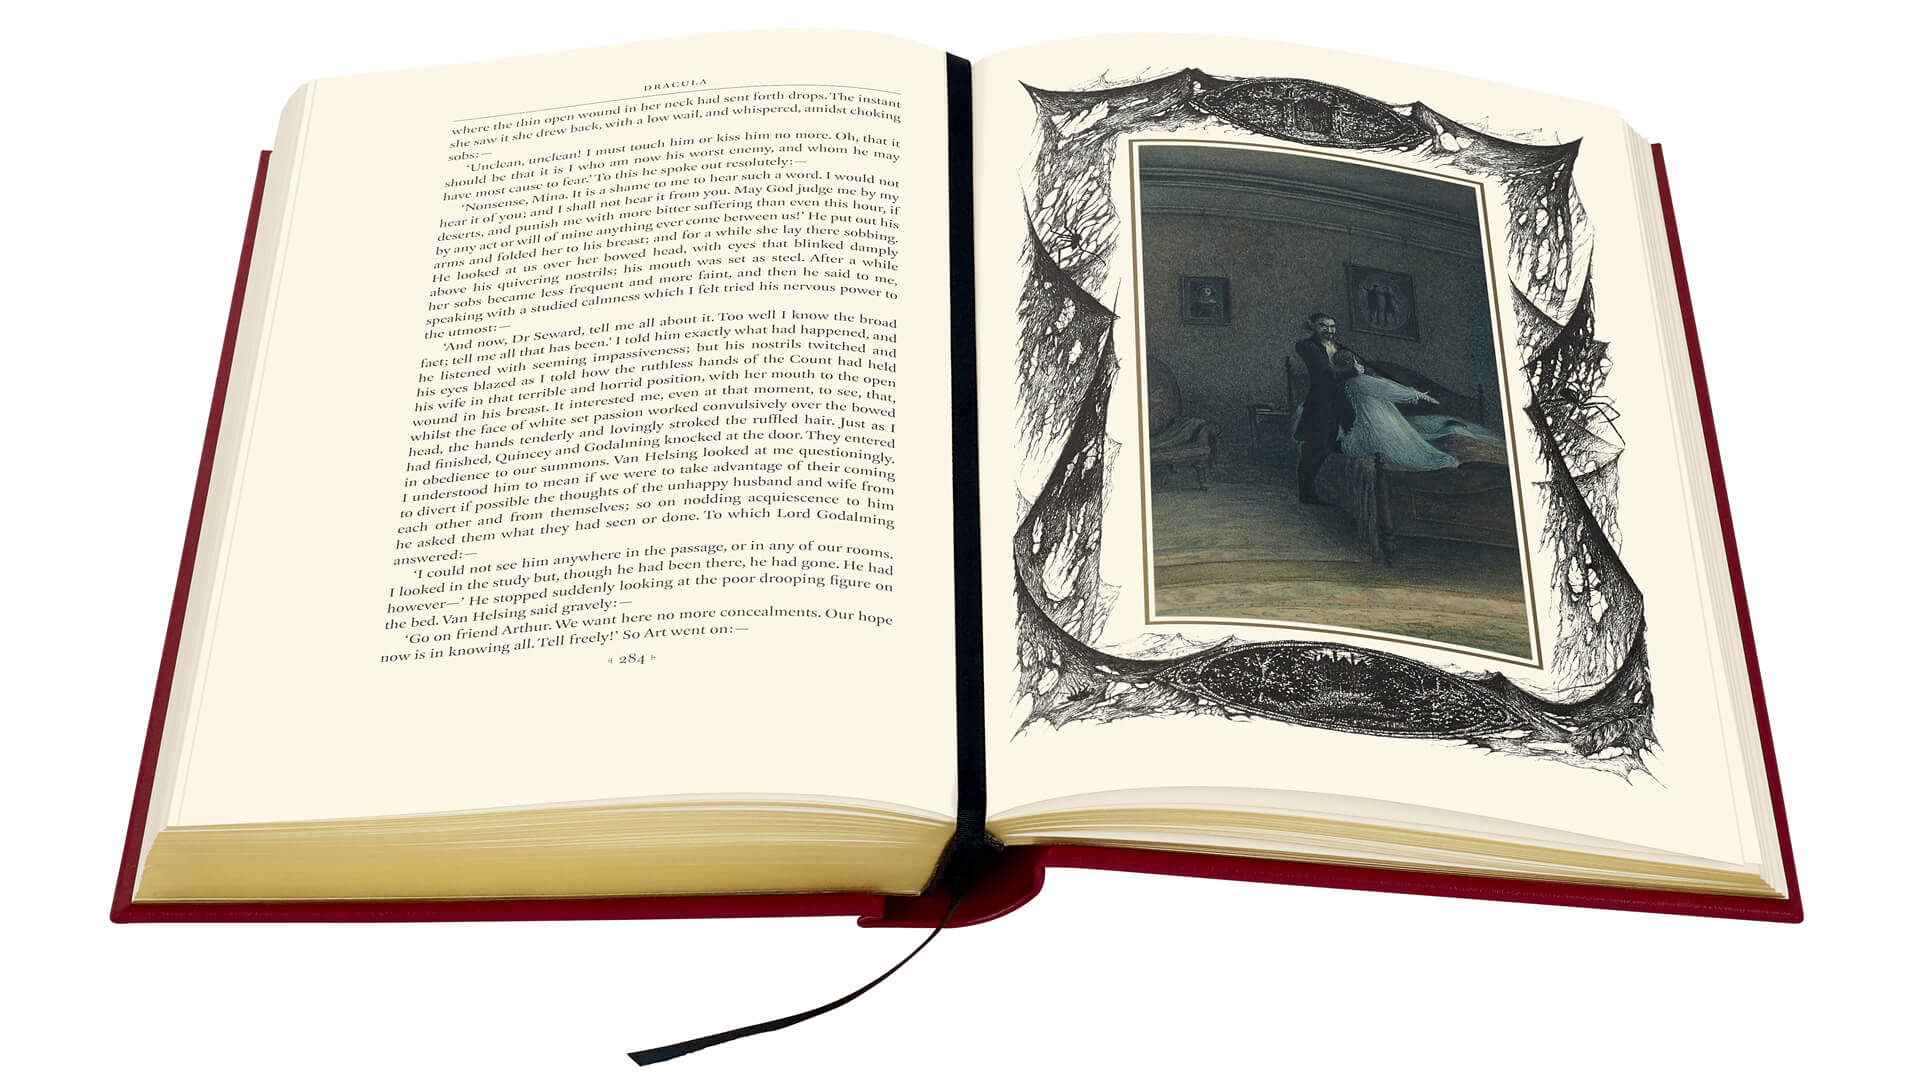 Dracula book pages